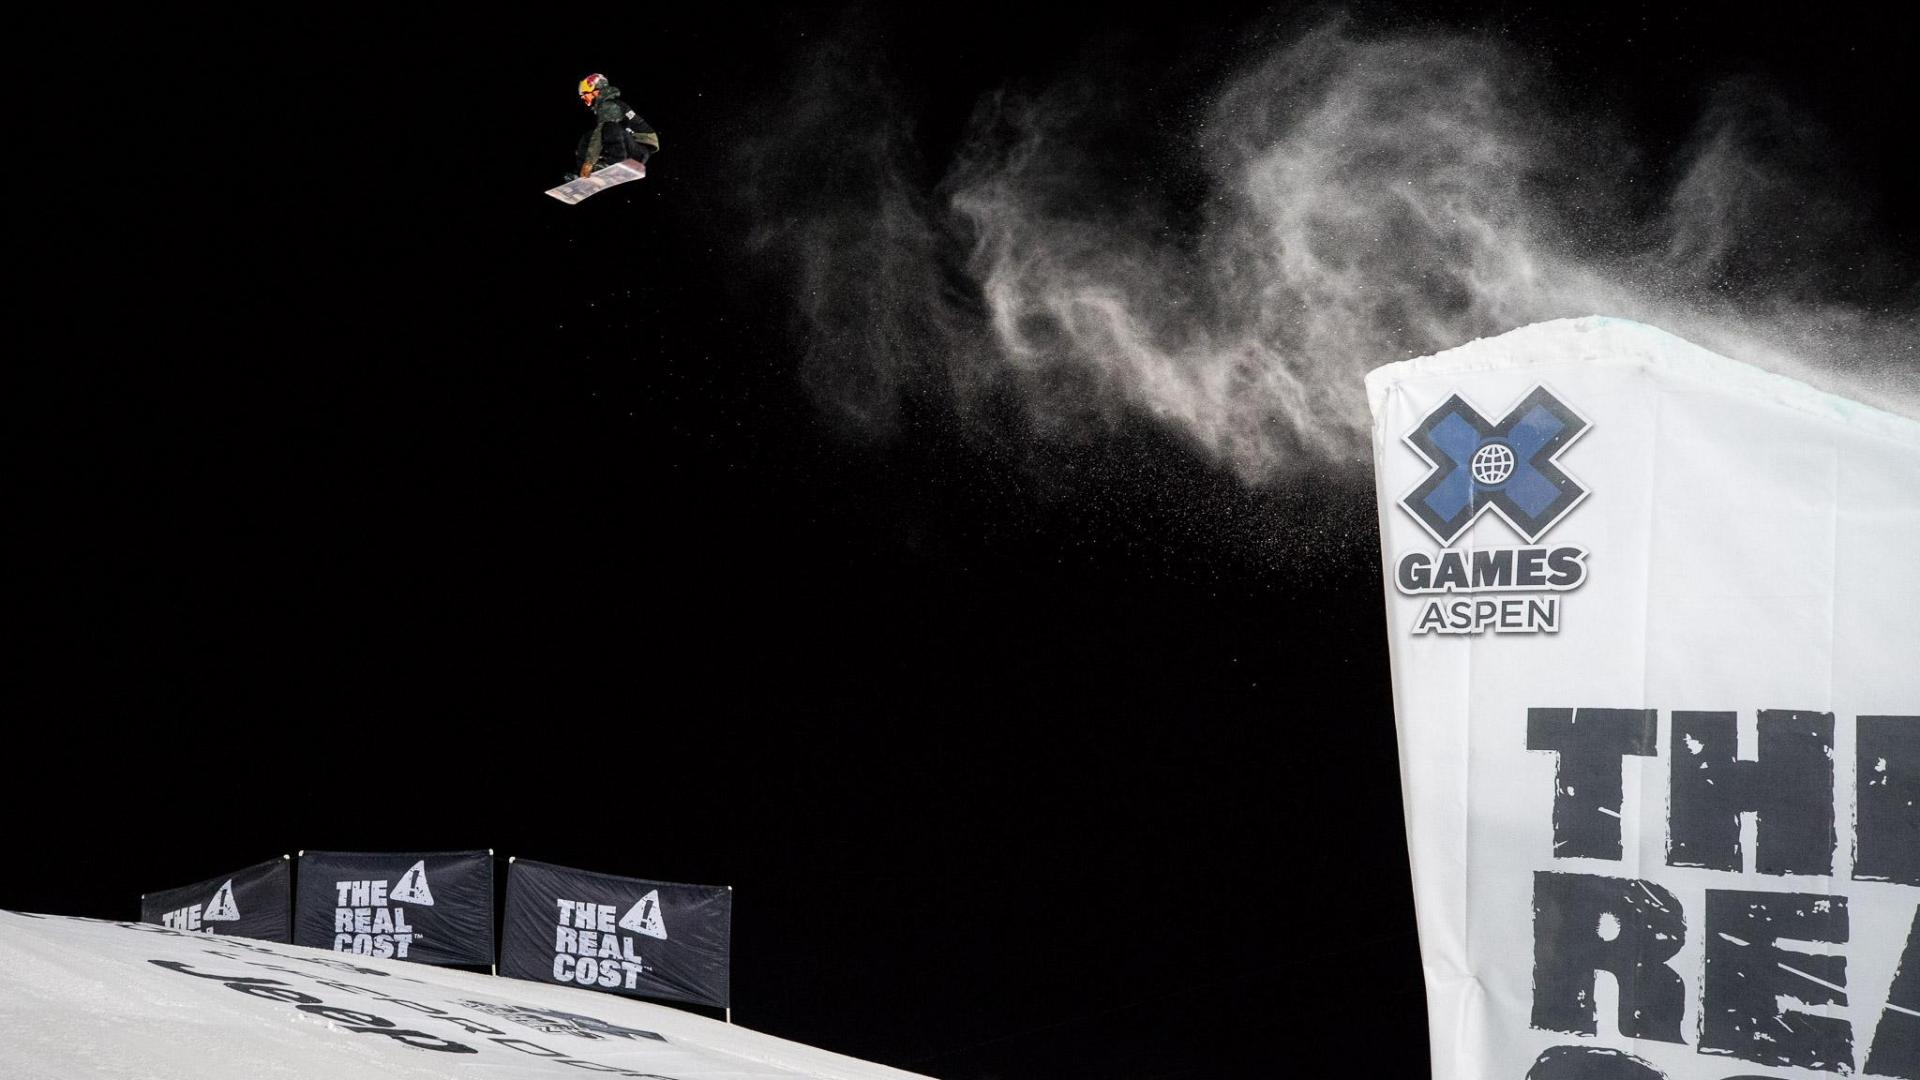 Nicholson sixth at X Games Aspen